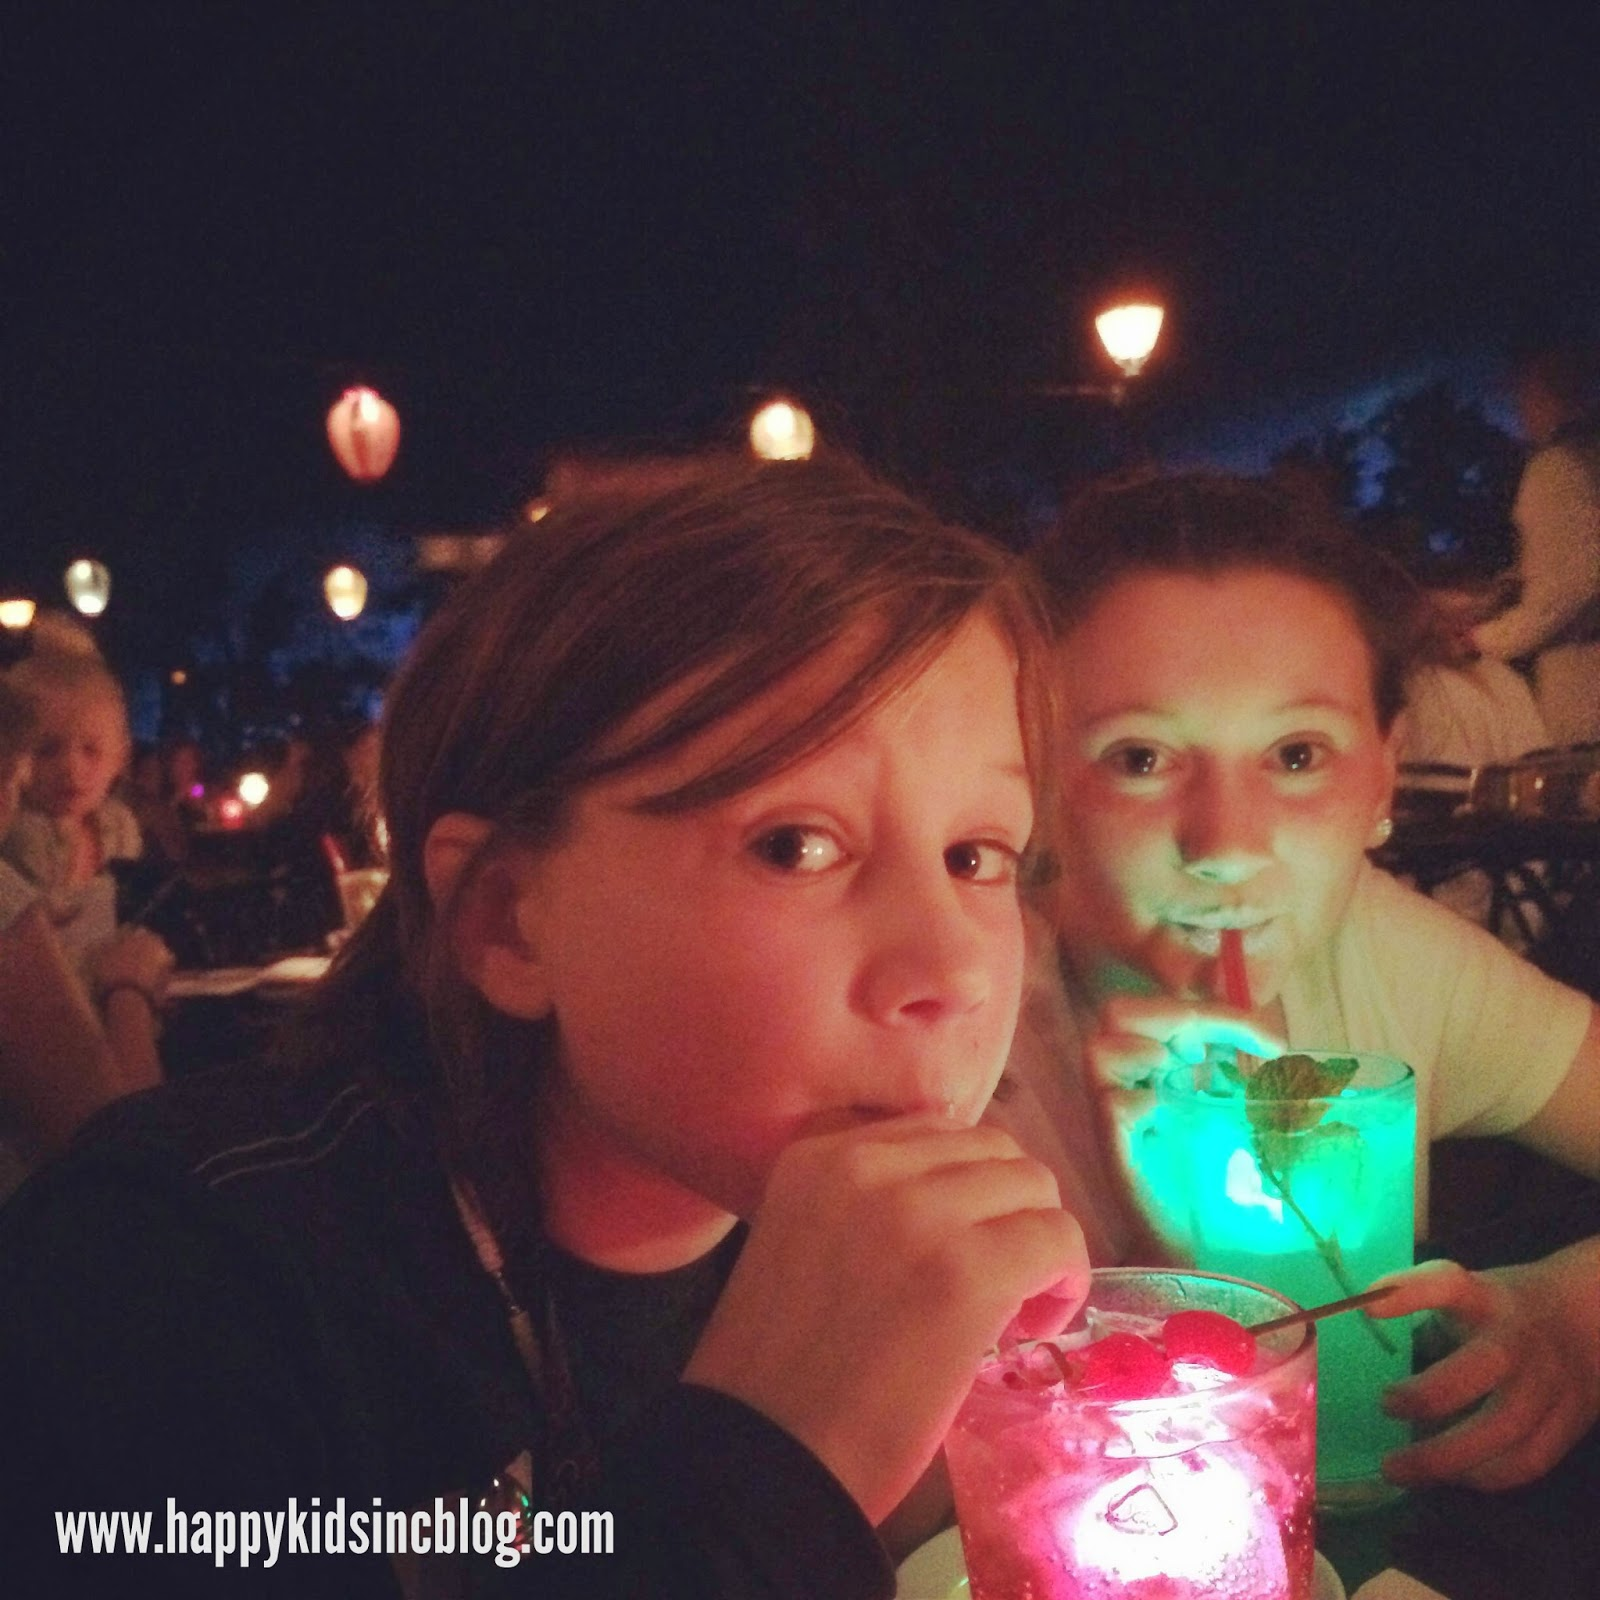 Blue Bayou Glowy Drinks at Disneyland